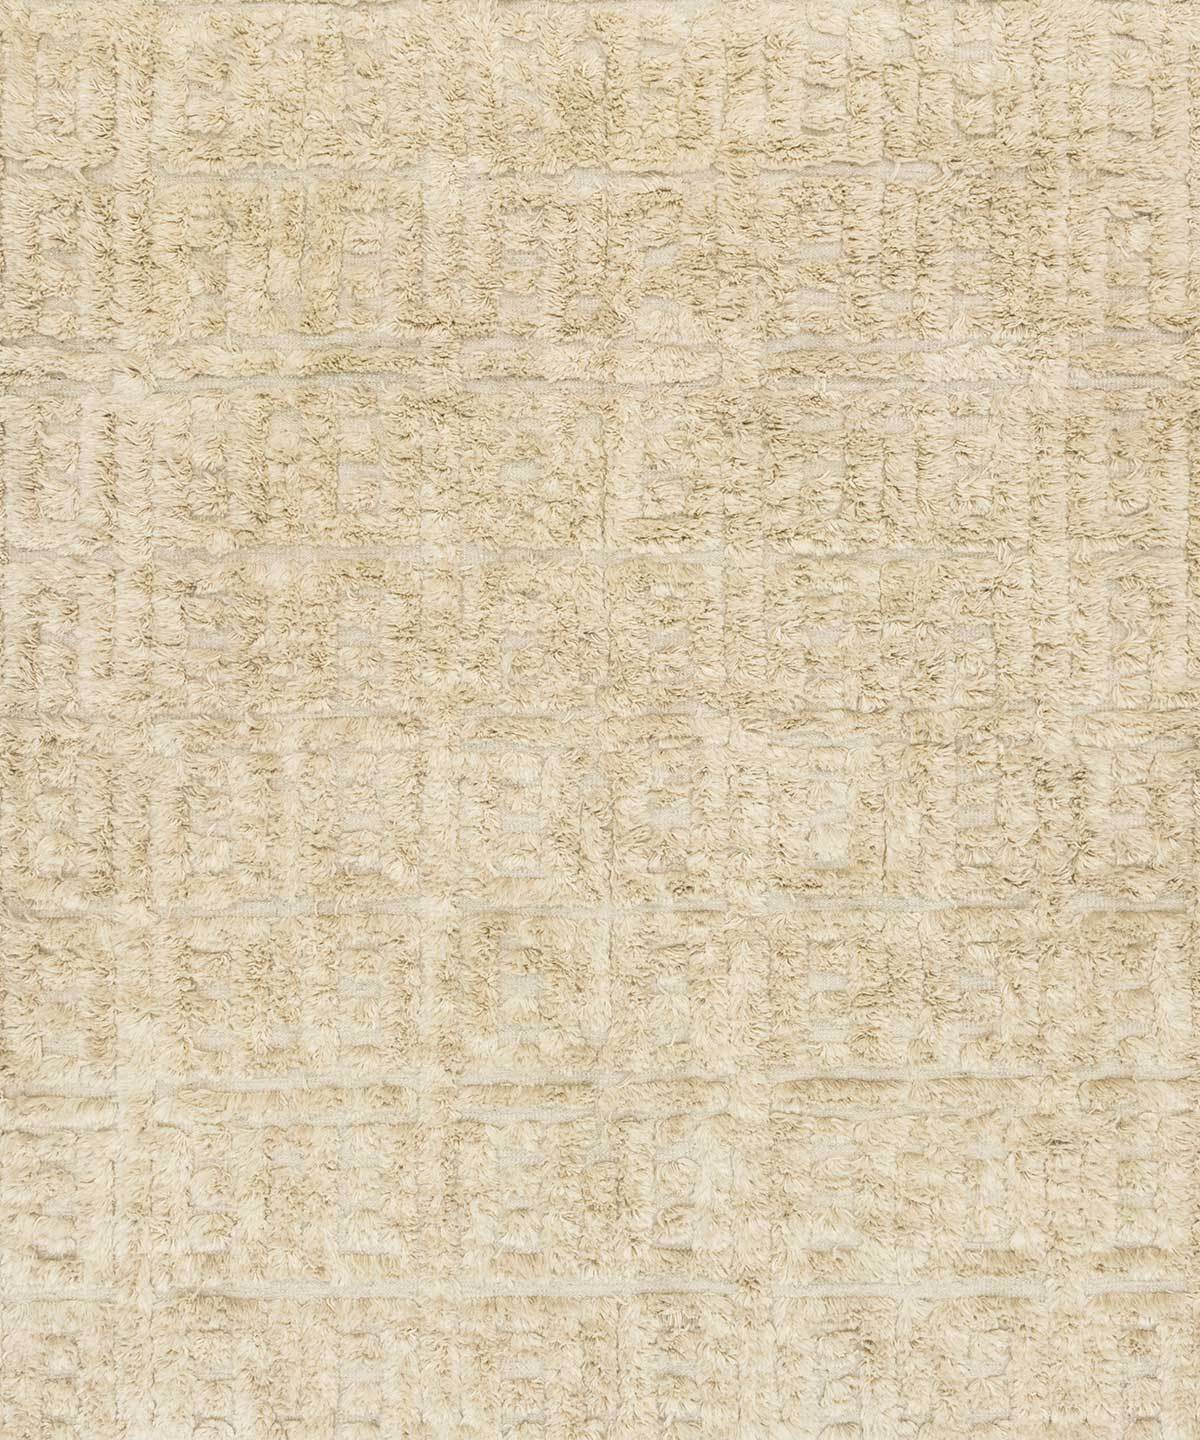 Hygge Rug in Oatmeal / Sand by Loloi | TRNK